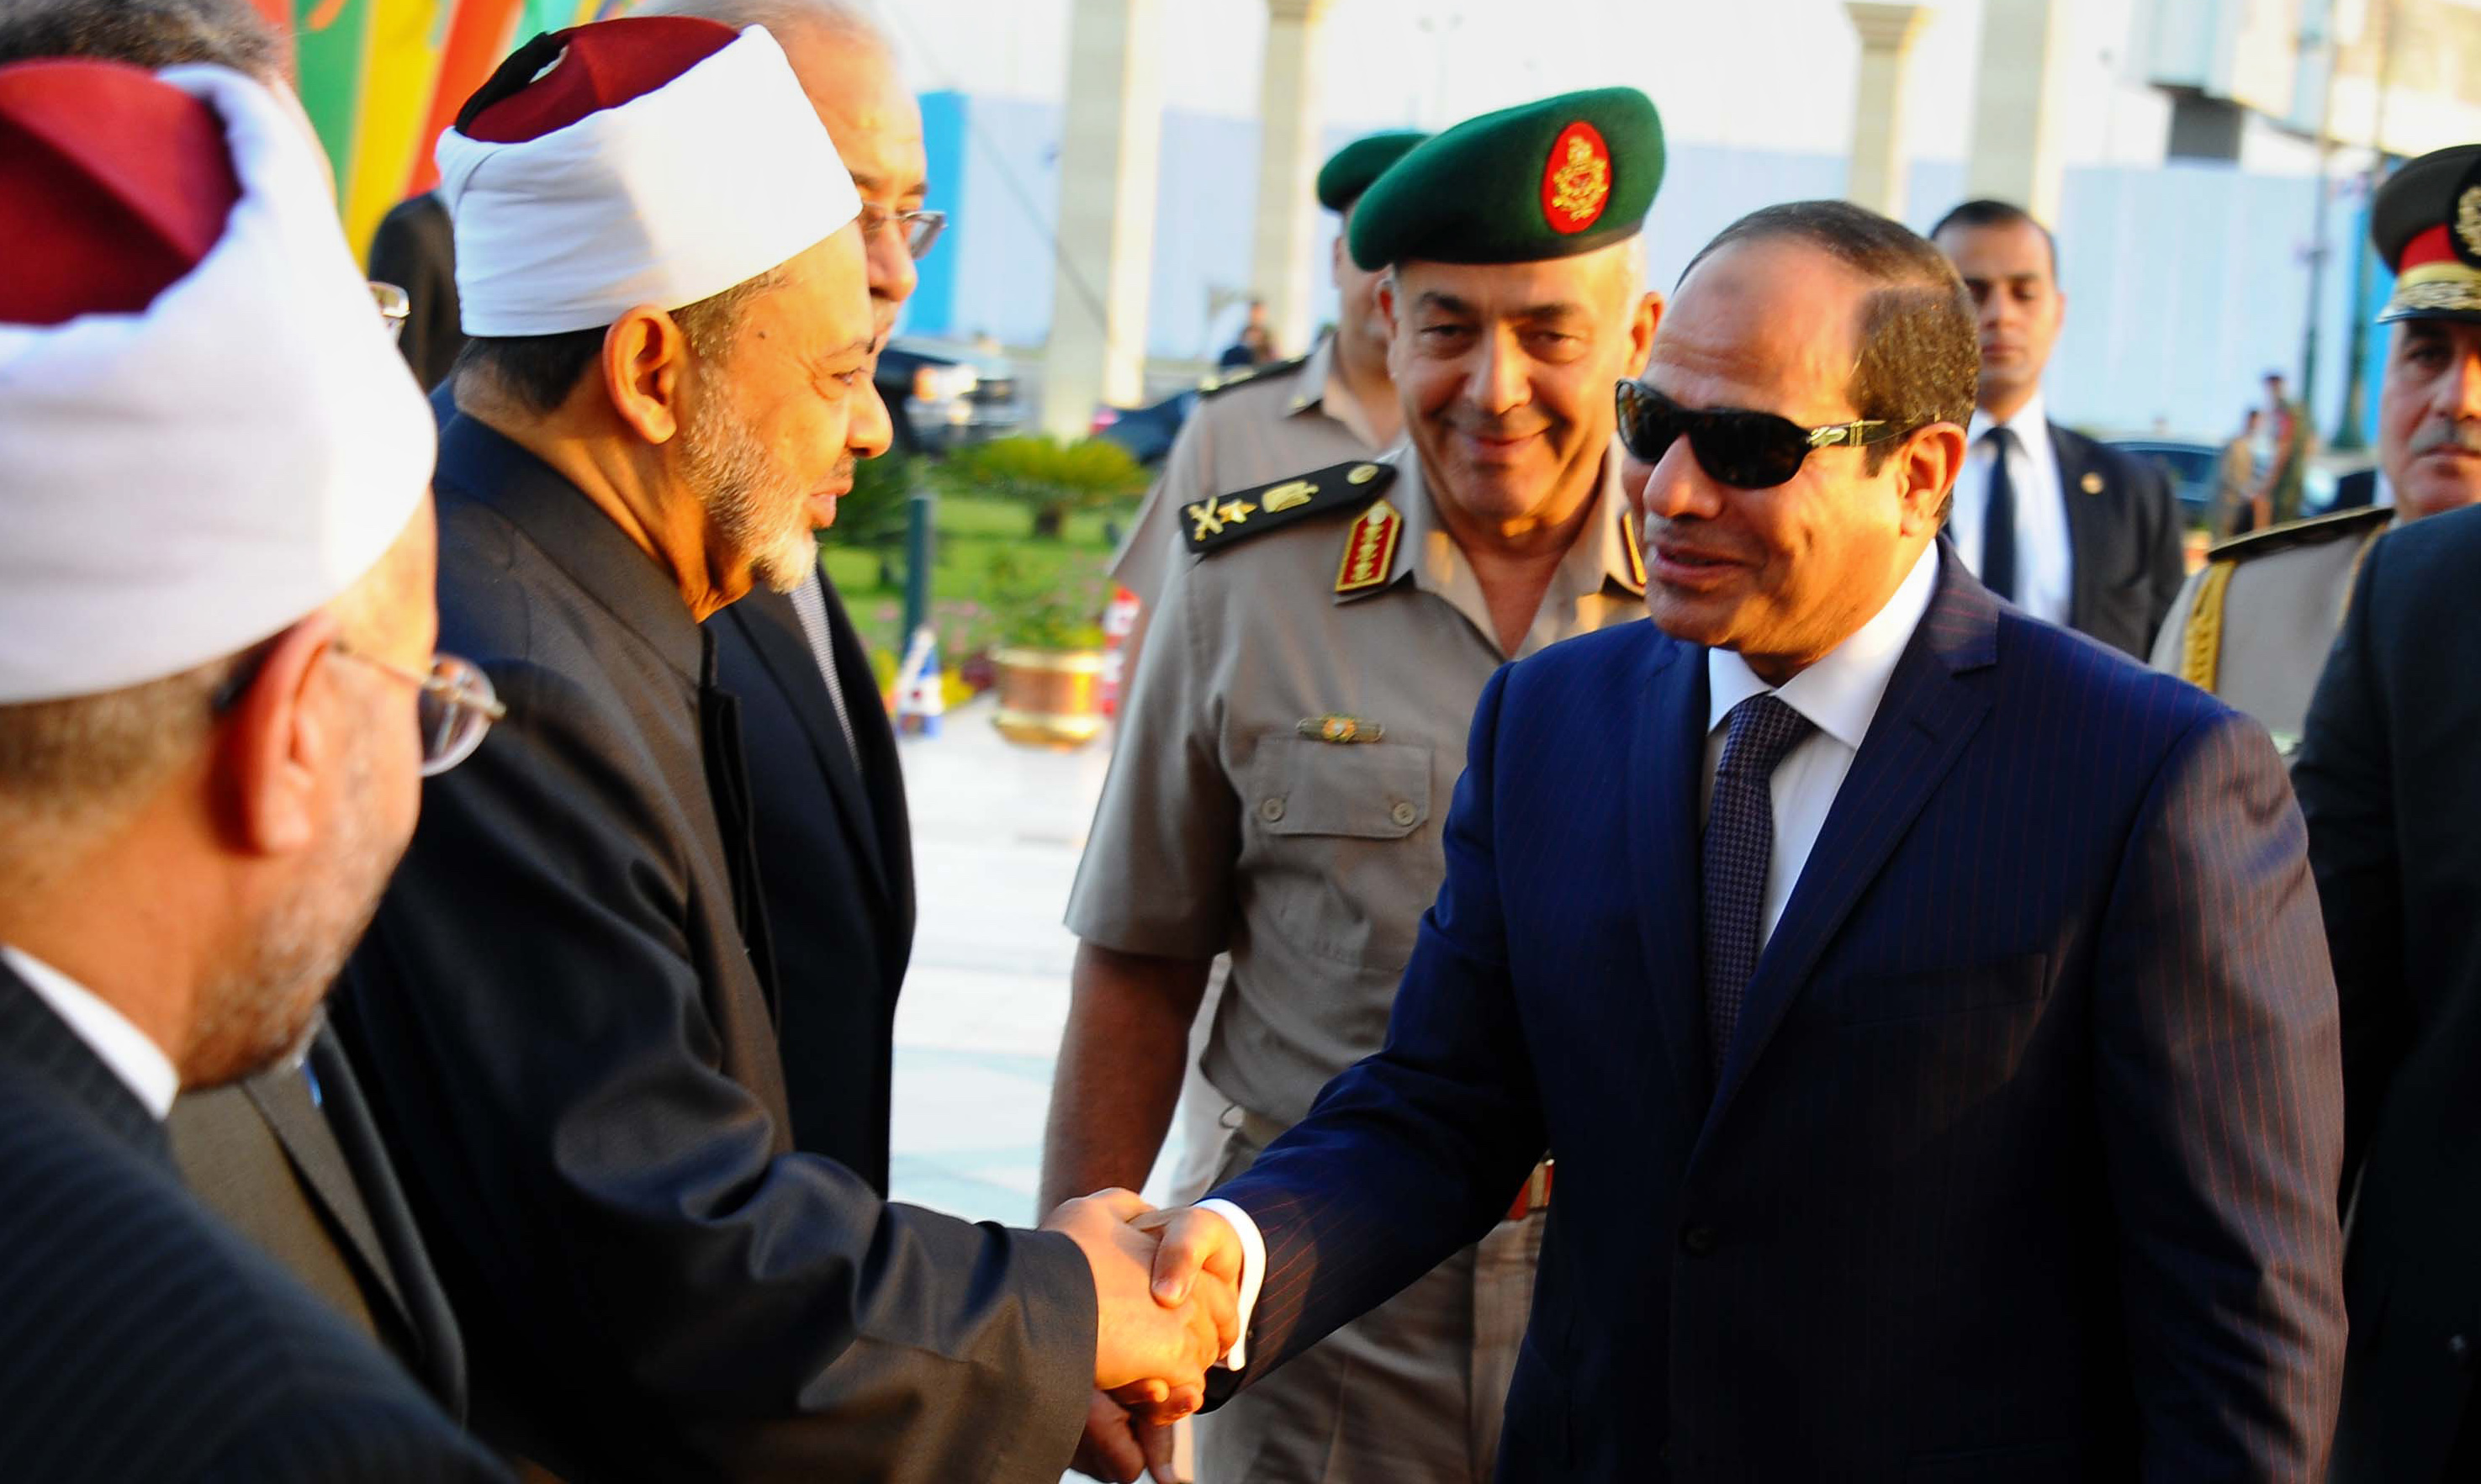 Al-Azhar and Sisi's Regime: Cooperation and Conflict - New Cairo, Sept. 2015: President Abdel-Fattah El-Sisi (R) greets Sheik Ahmed El-Tayeb, Grand Imam of Al-Azhar; Egypt's president is demanding the clergy tone down radical discourse on Islam (source: dpa)